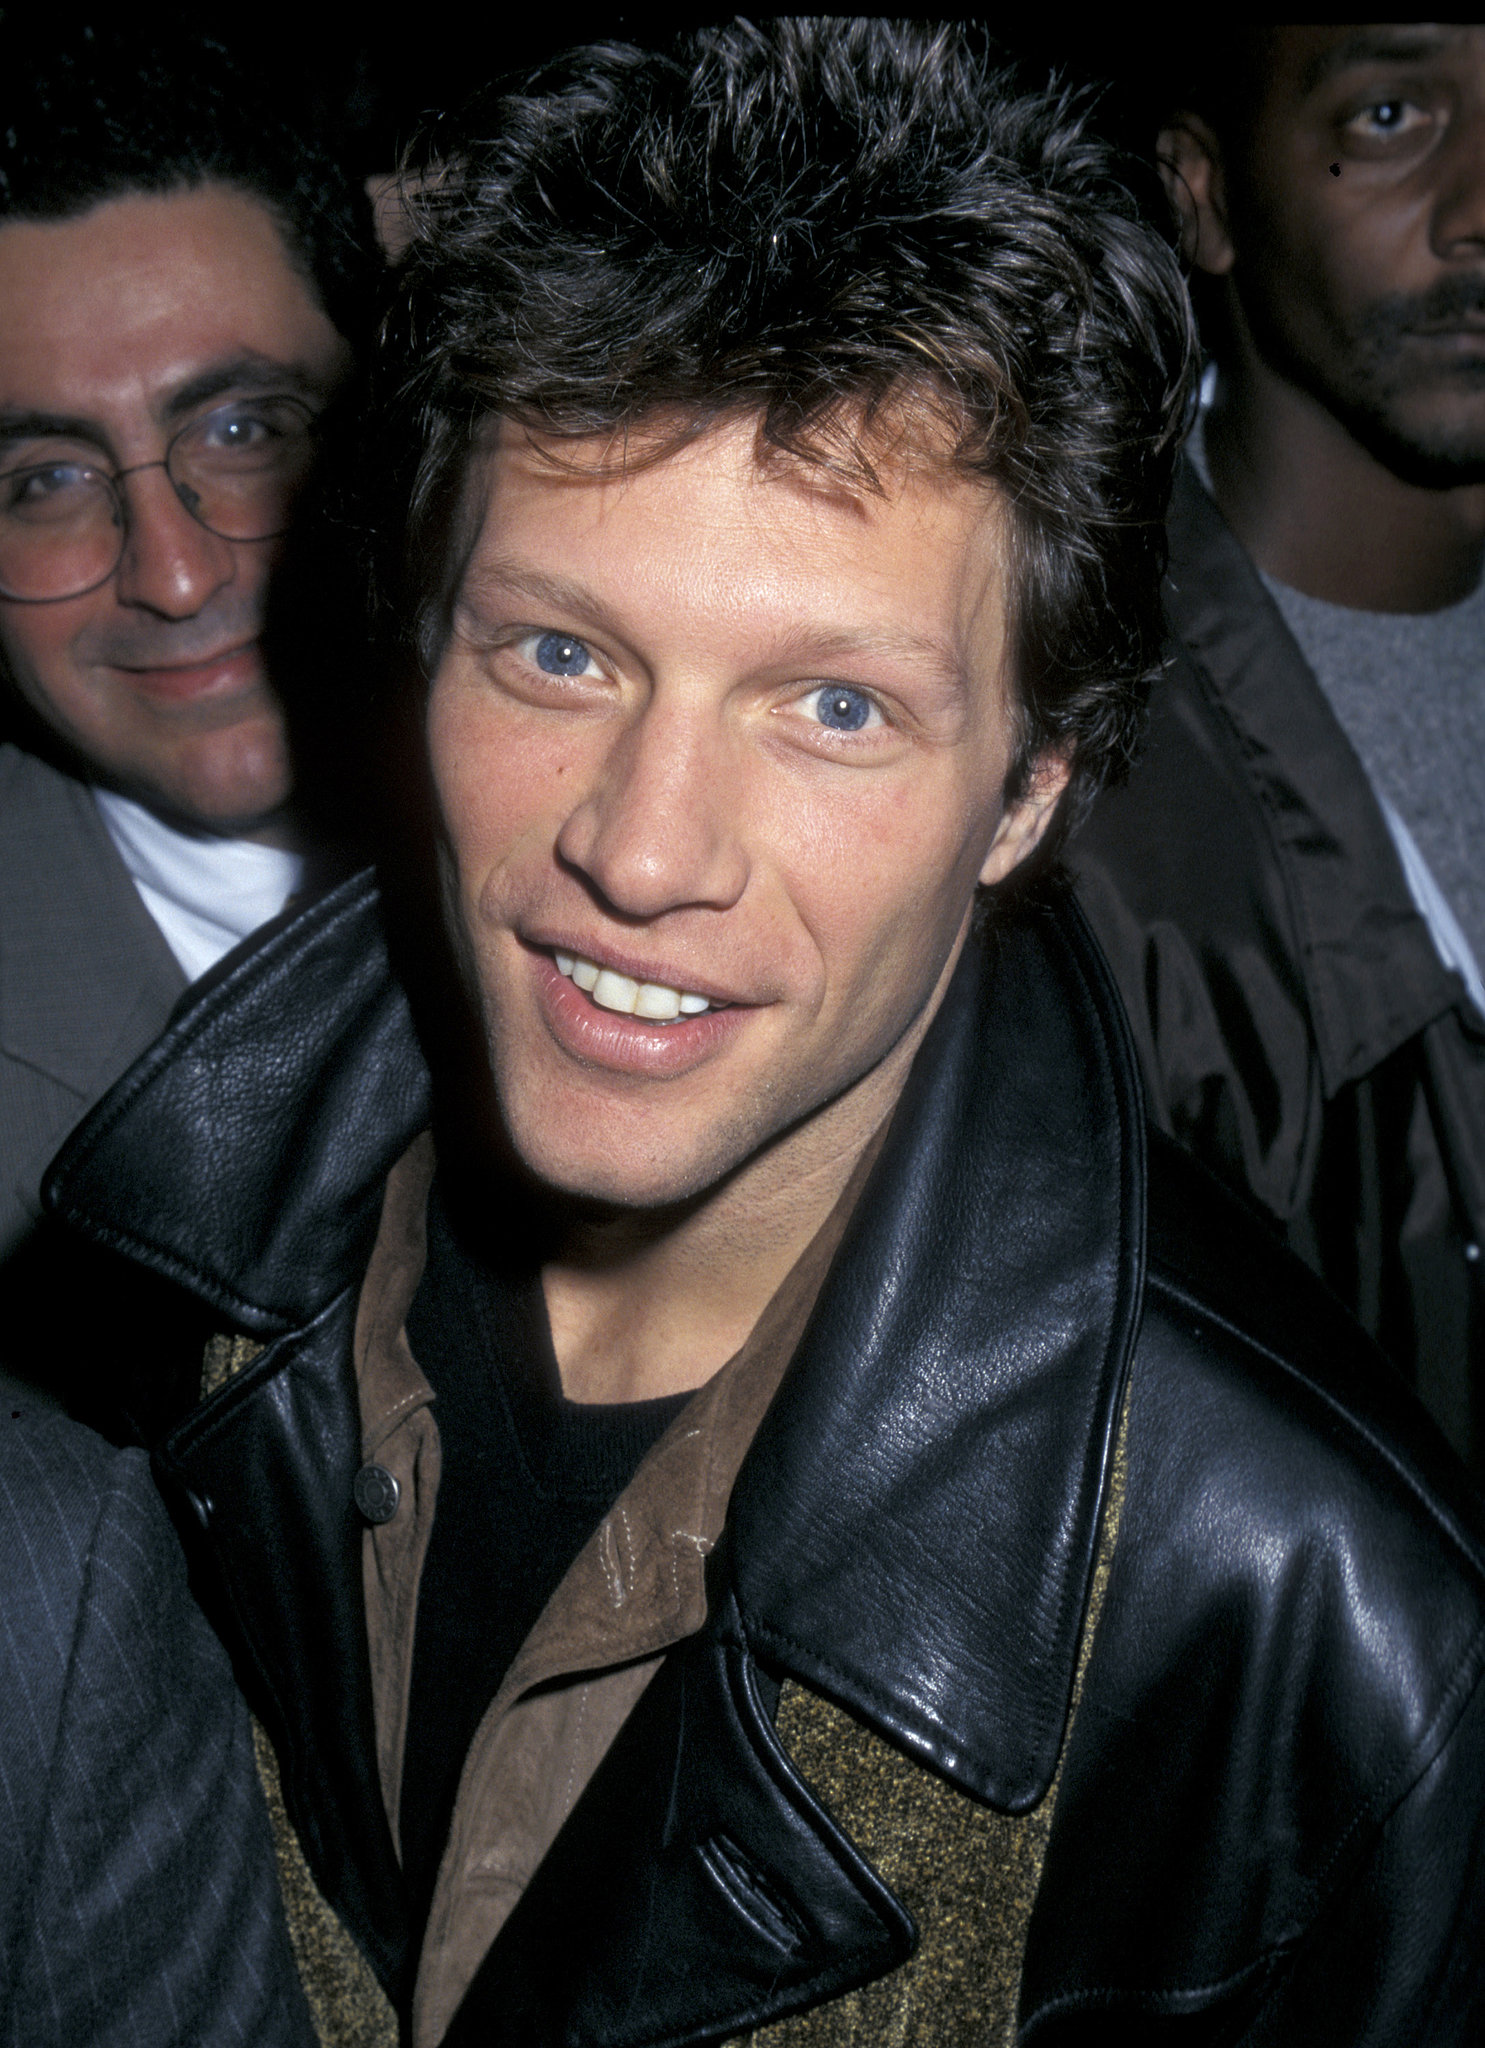 Jon Bon Jovi enjoyed his front-row seat in 1997.